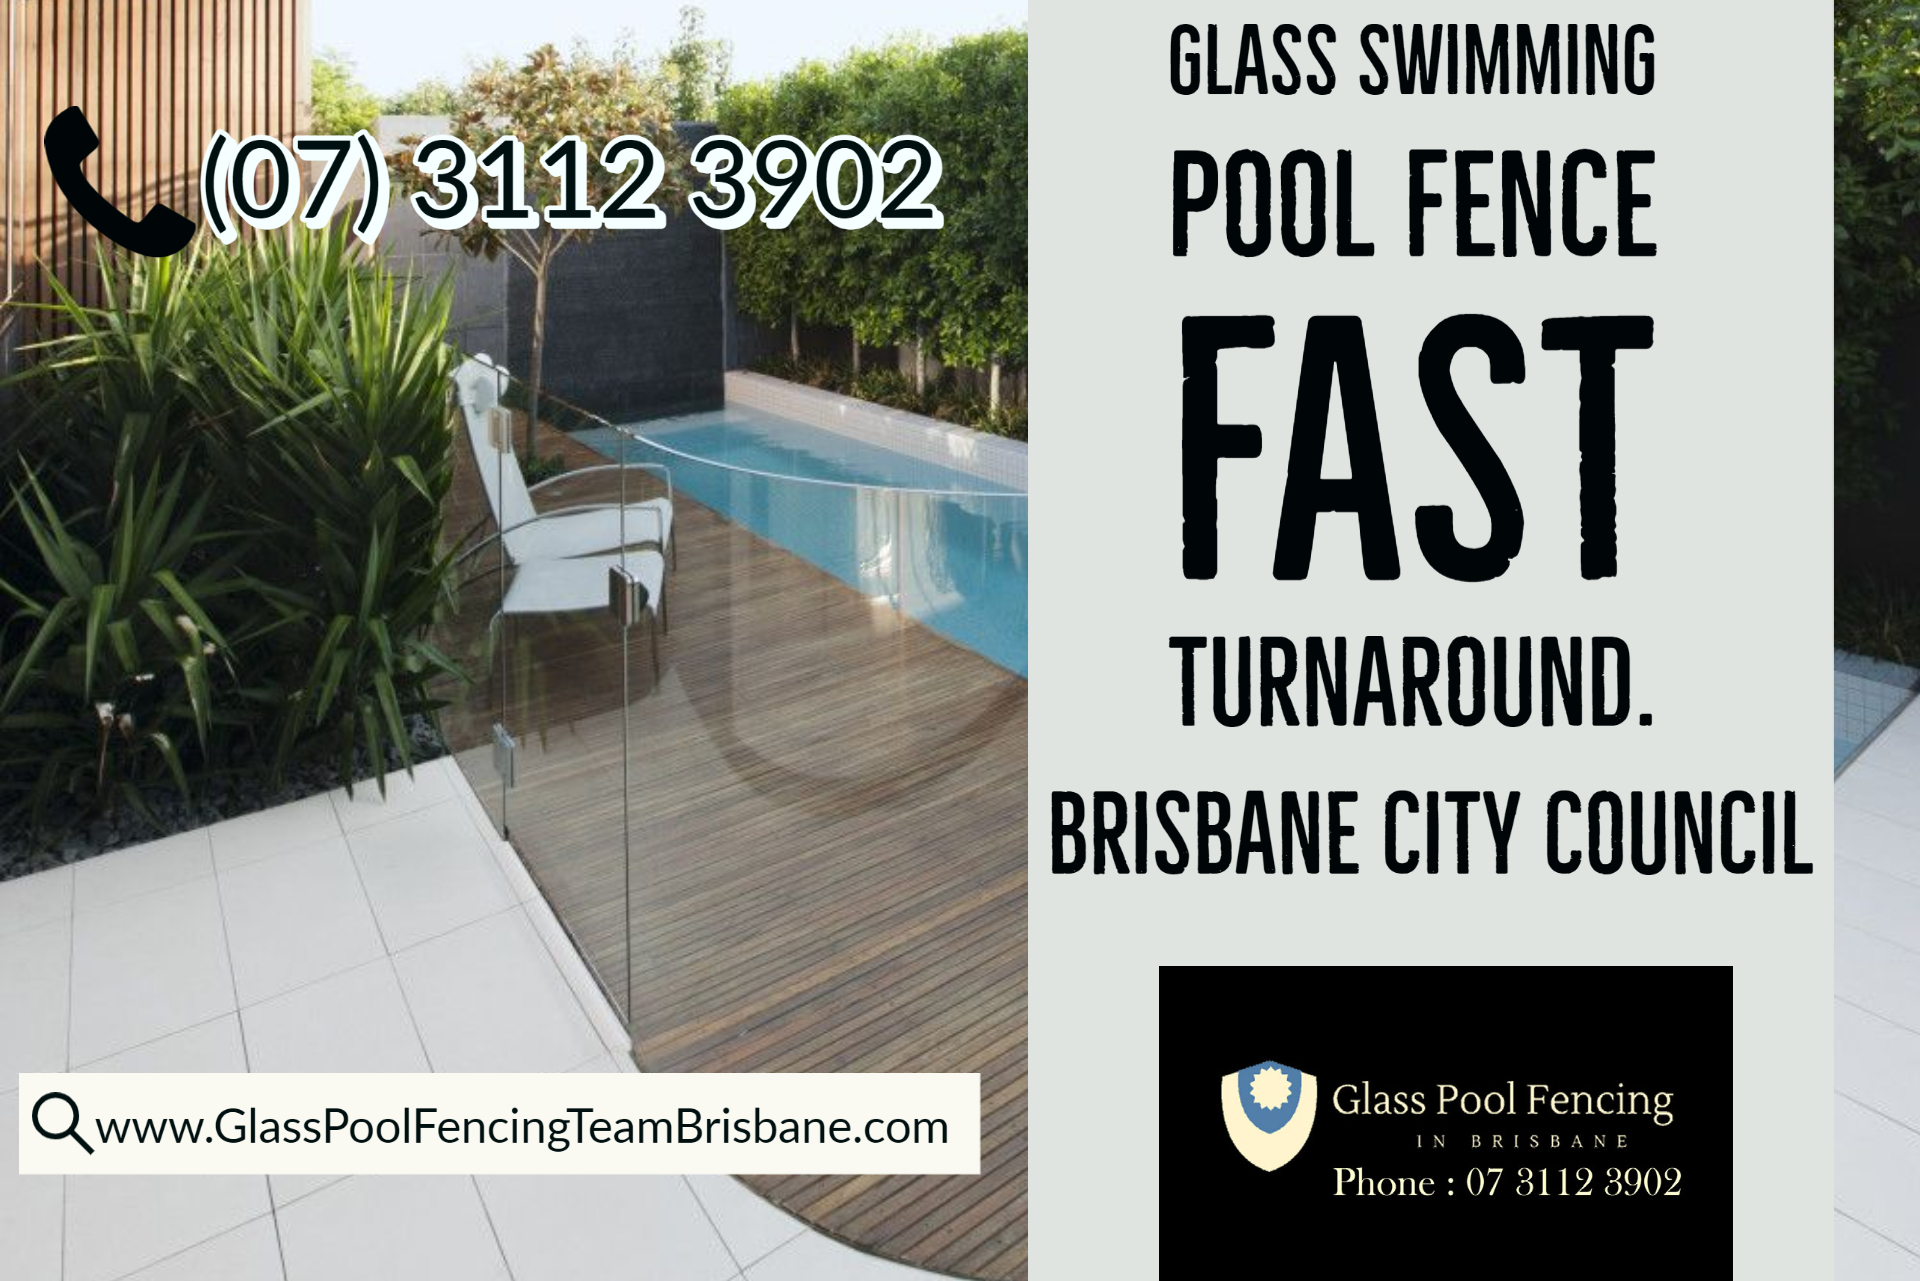 Concrete Footing Installation For Glass Pool Fence Free Council Compliant Certification